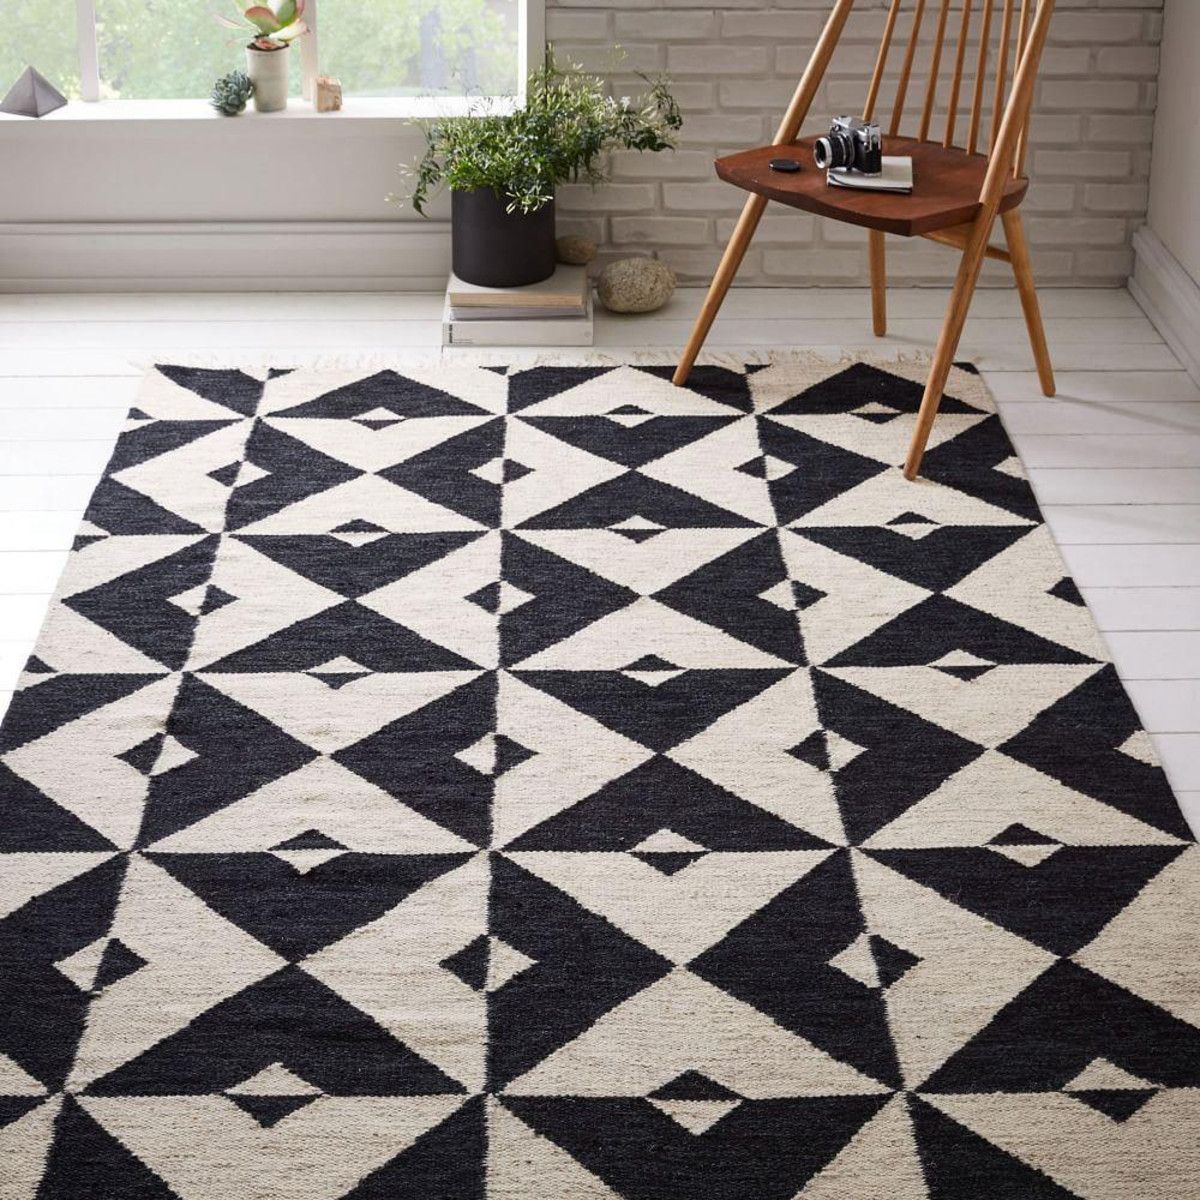 Our Graphic Tile Wool Dhurrie Rug Is Our Take On Classic Floor Tiles